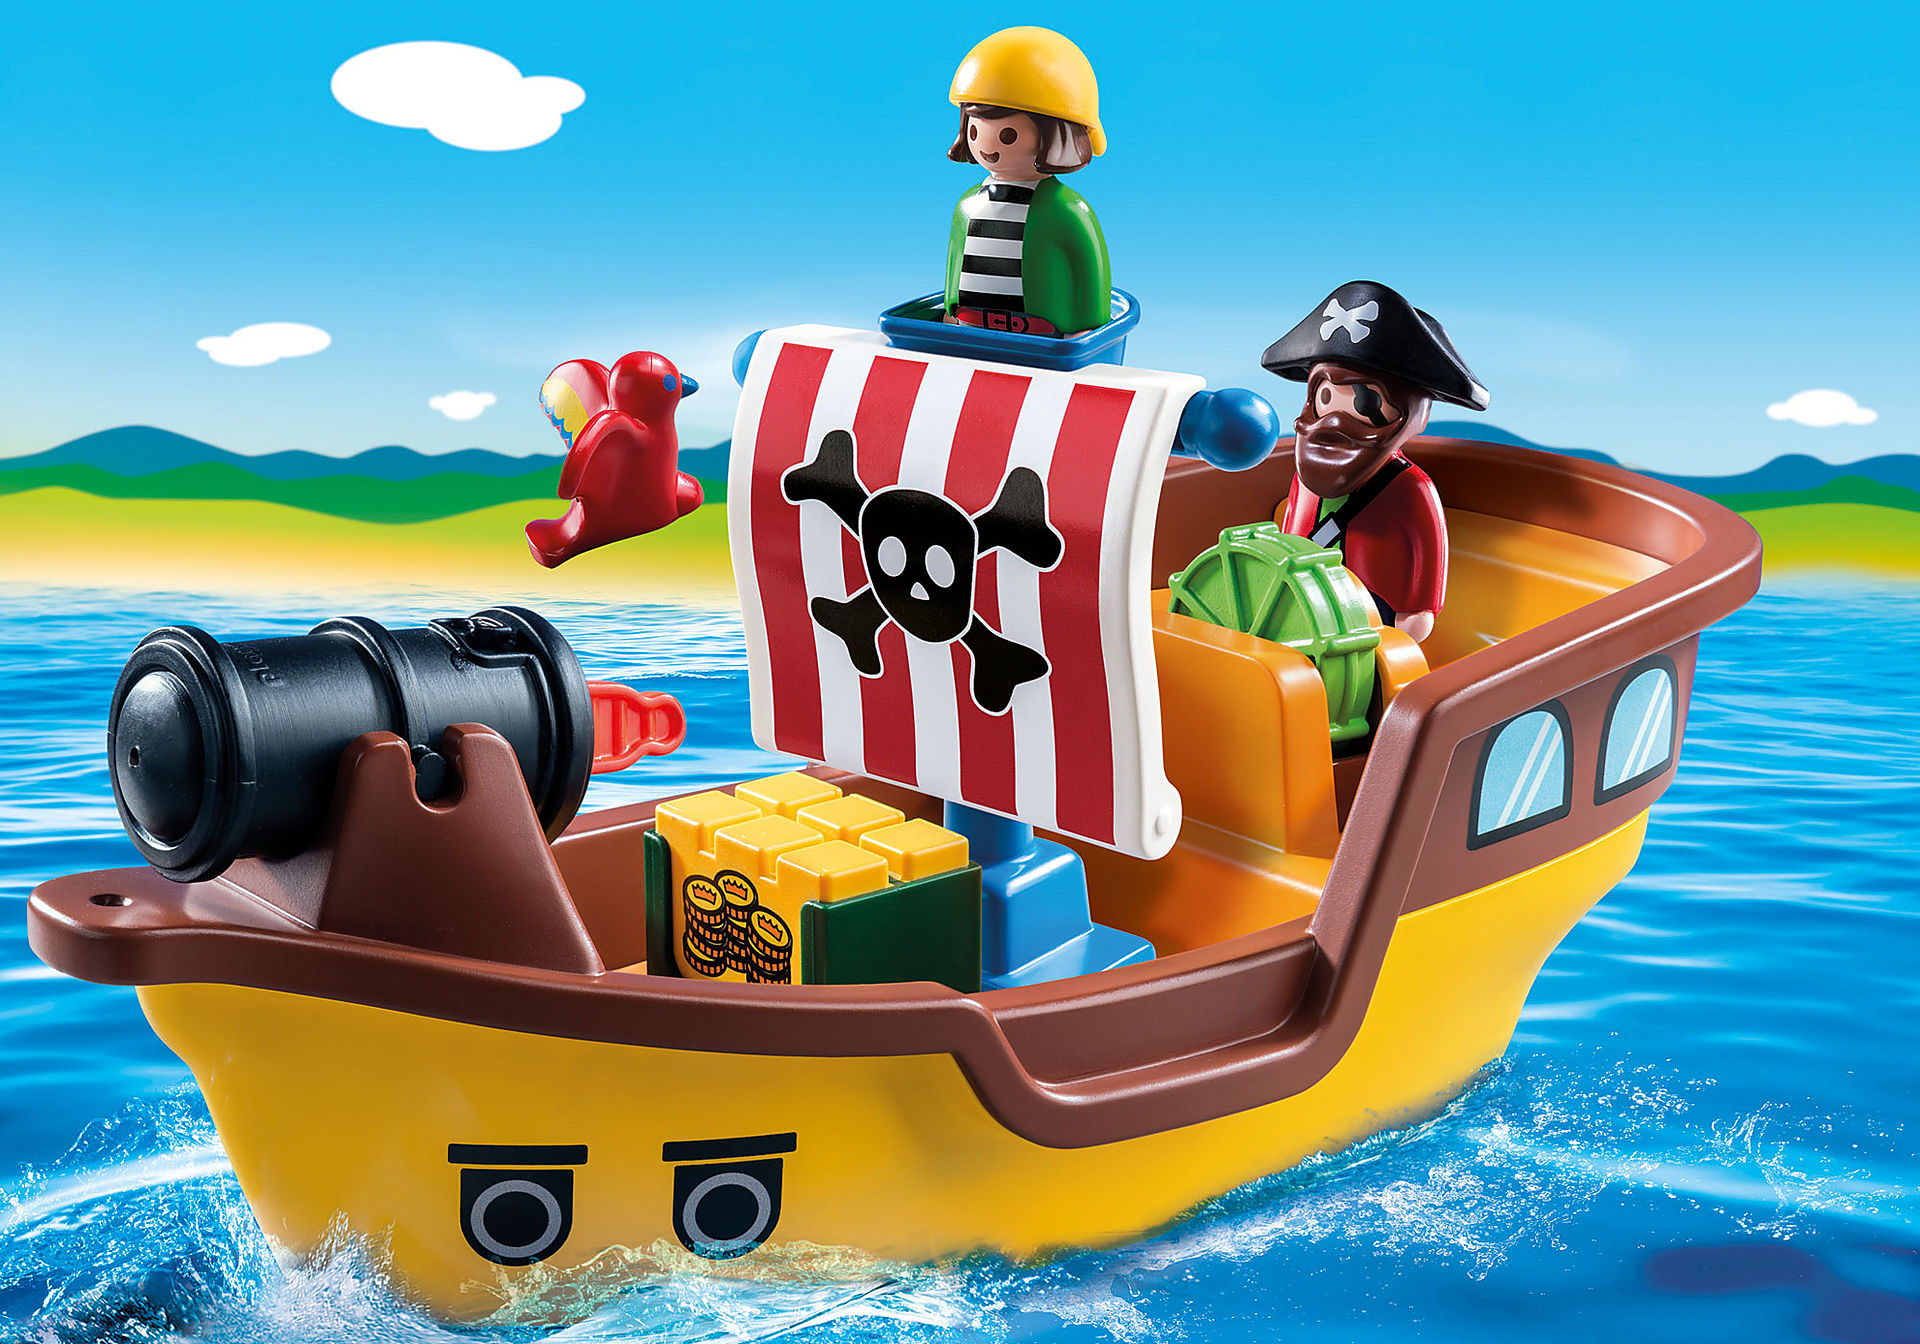 http://media.playmobil.com/i/playmobil/9118_product_detail/1.2.3 Piratskepp